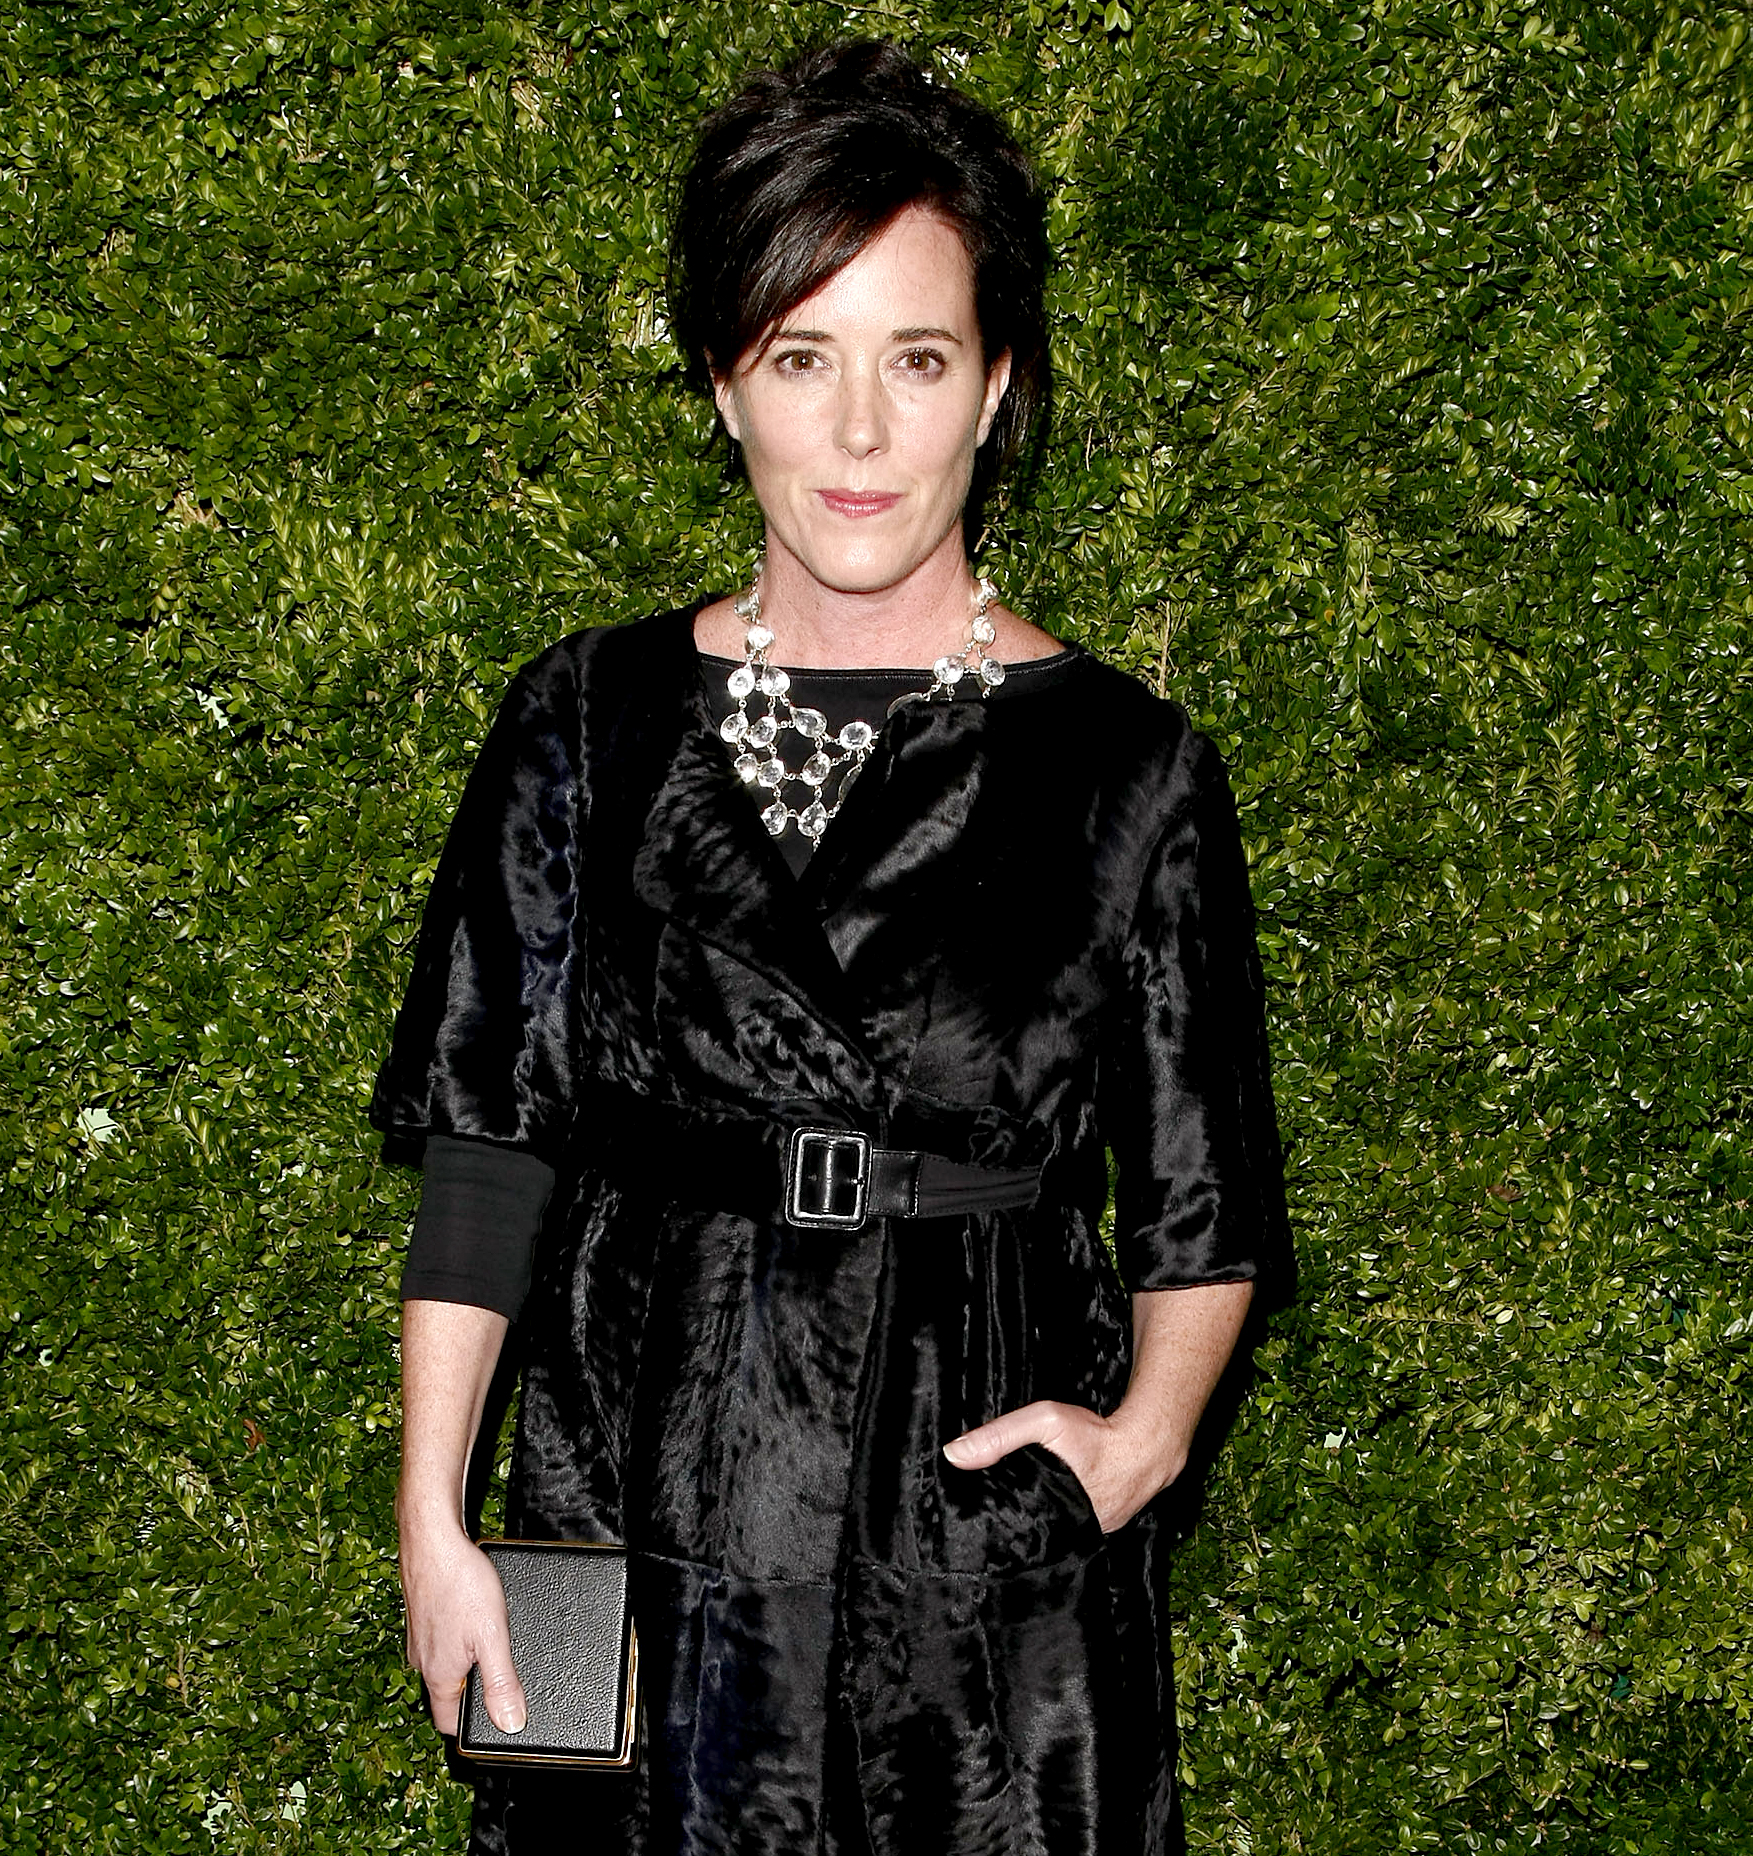 Kate Spade Dead: Designer Dies at 55 From Apparent Suicide